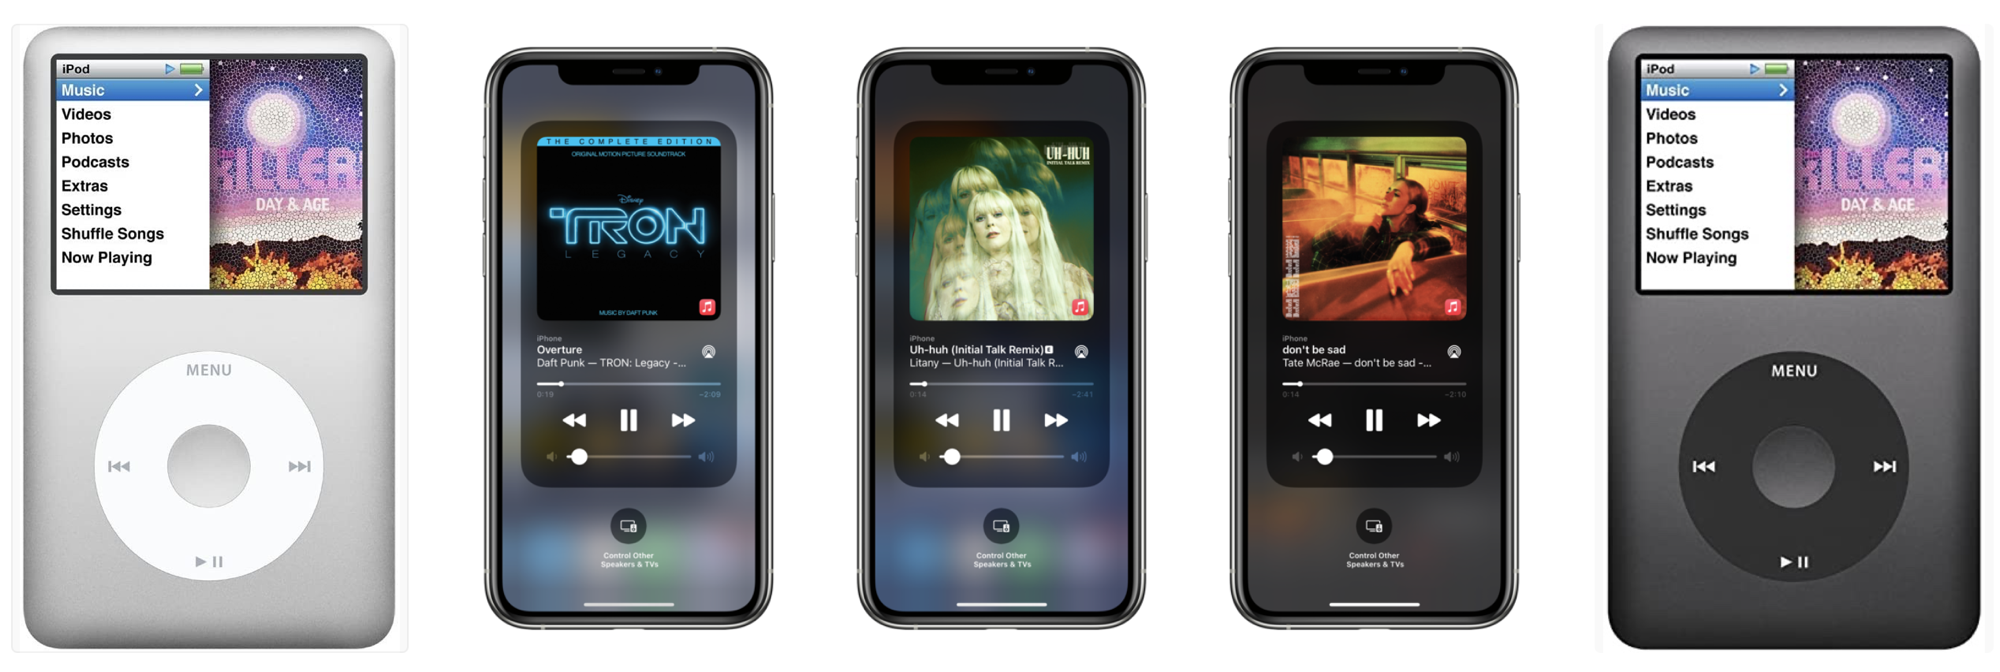 IPod Classix and iOS 14 3 mediaplayer controls